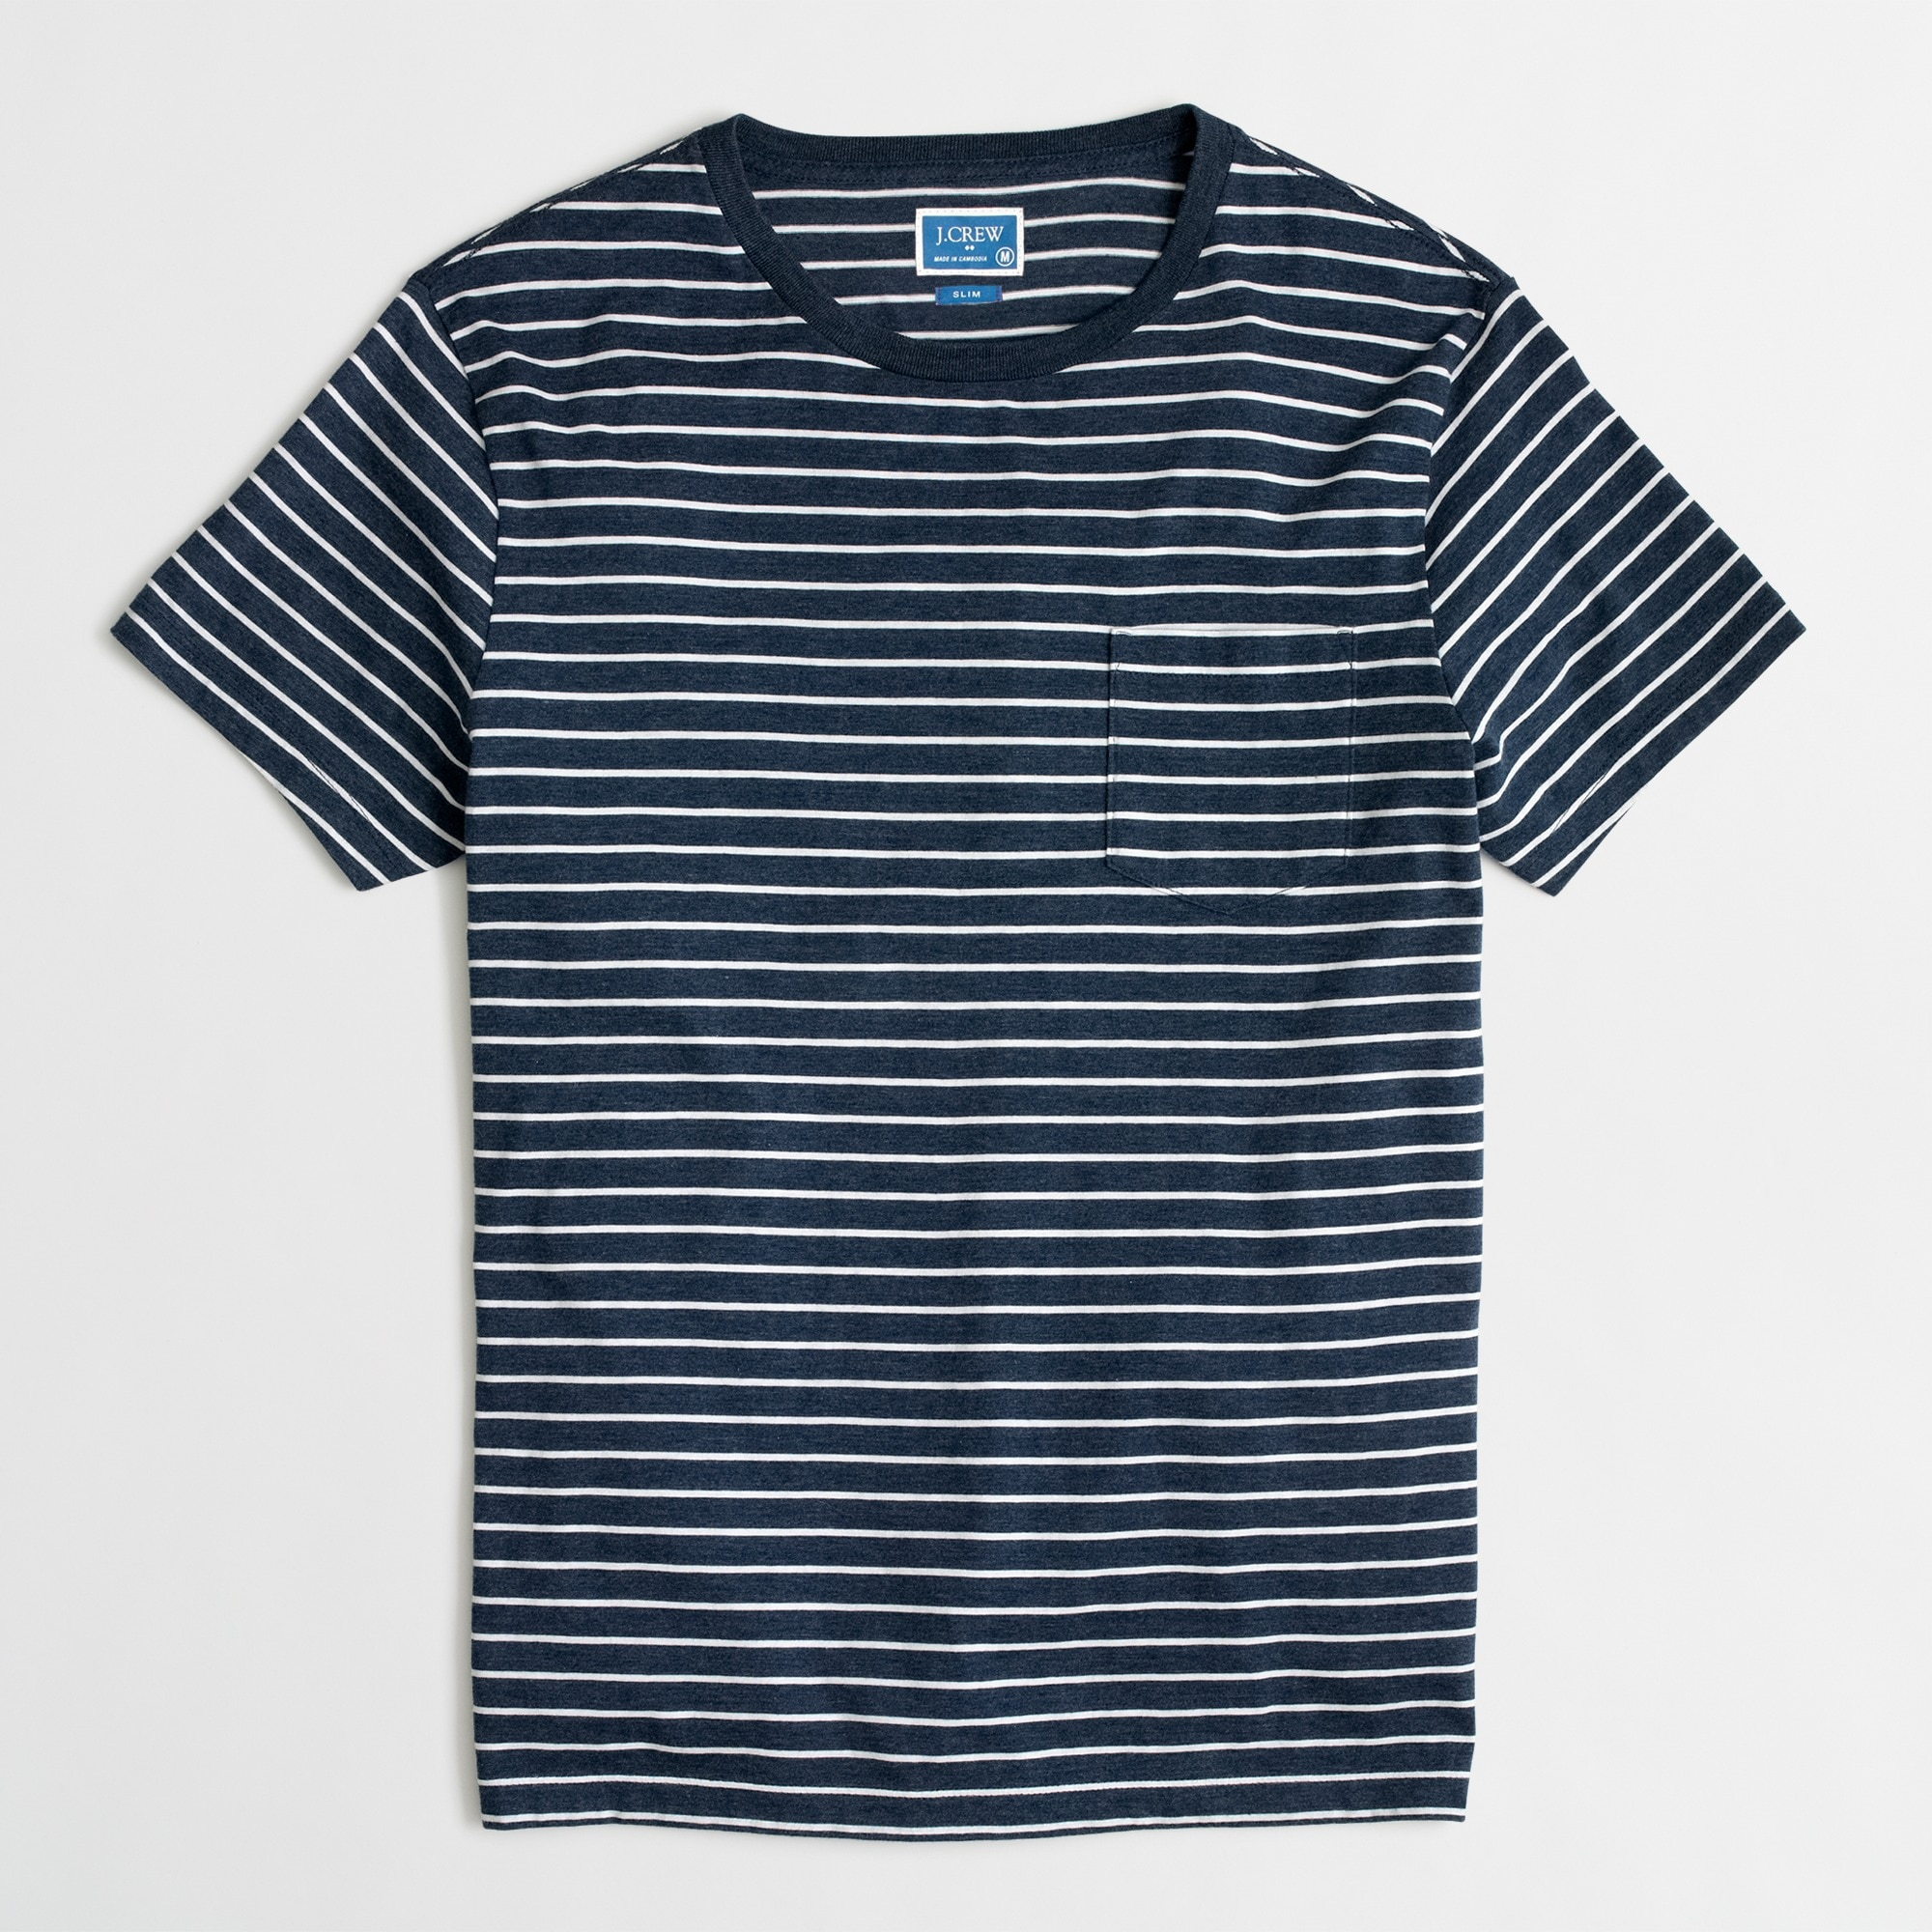 J.Crew Mercantile tall slim Broken-in striped pocket T-shirt